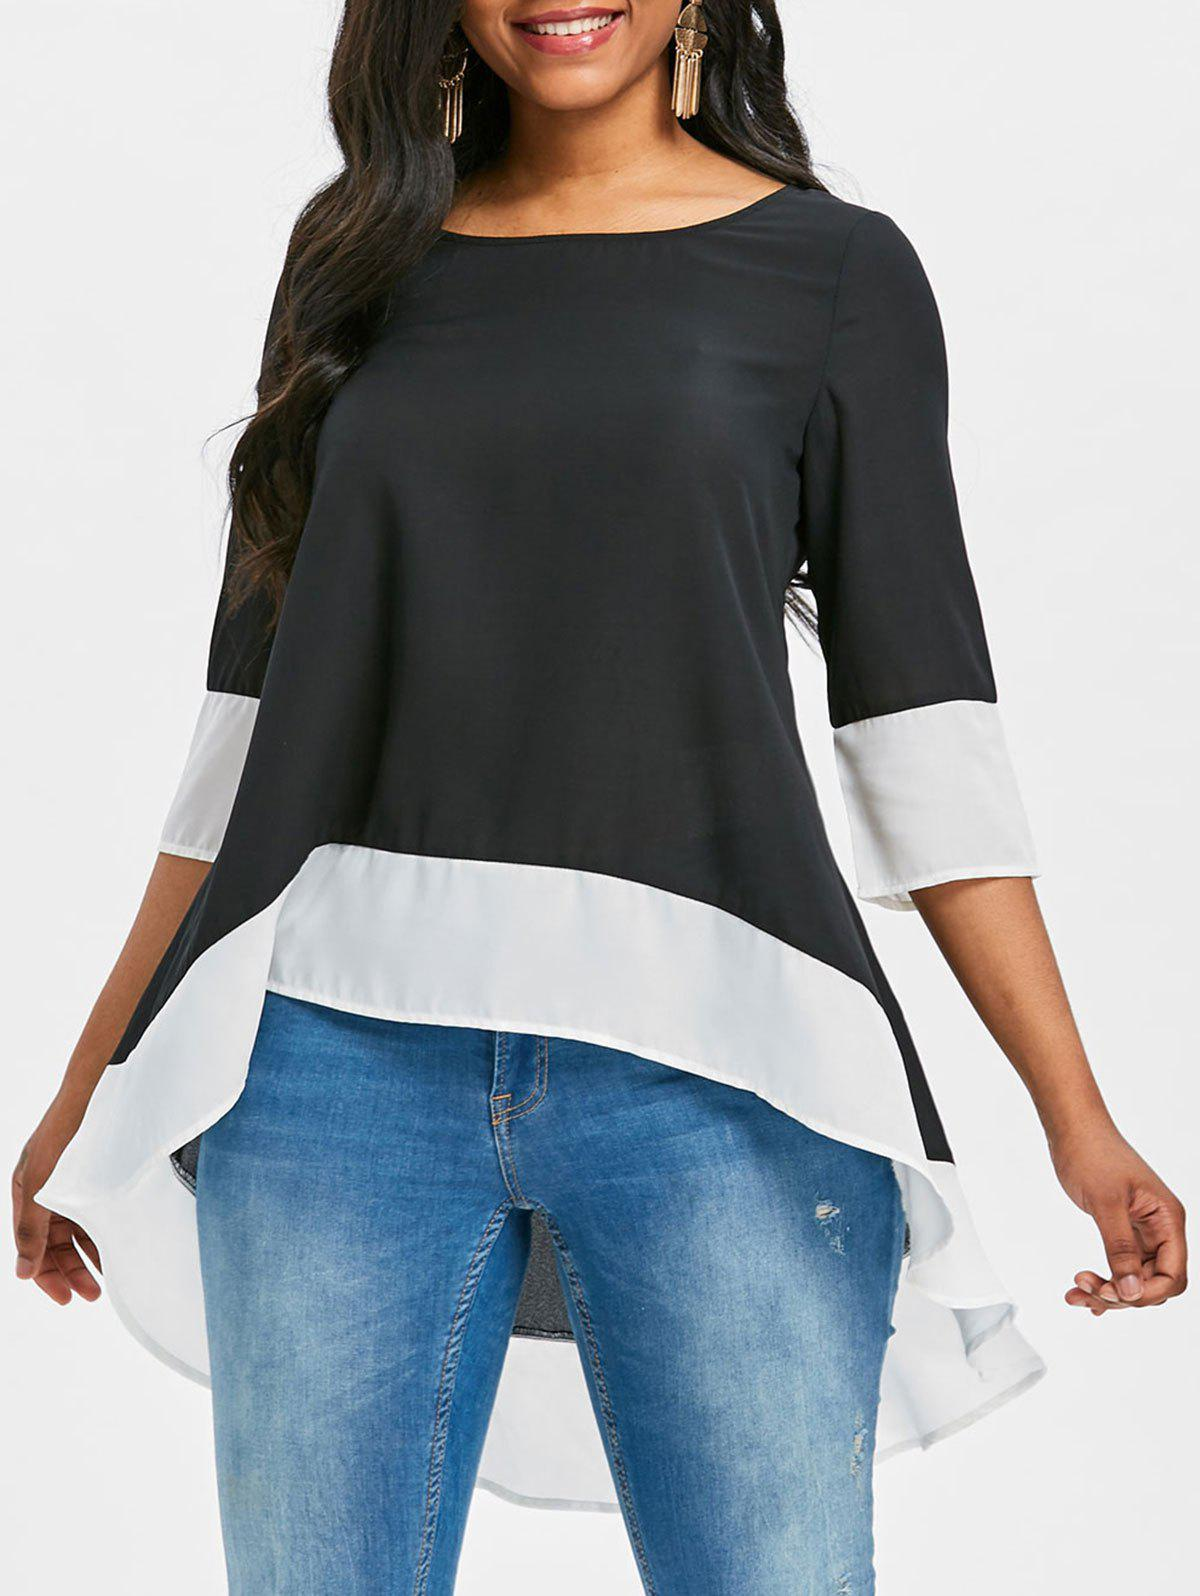 Contrast Trim High Low Blouse - BLACK XL